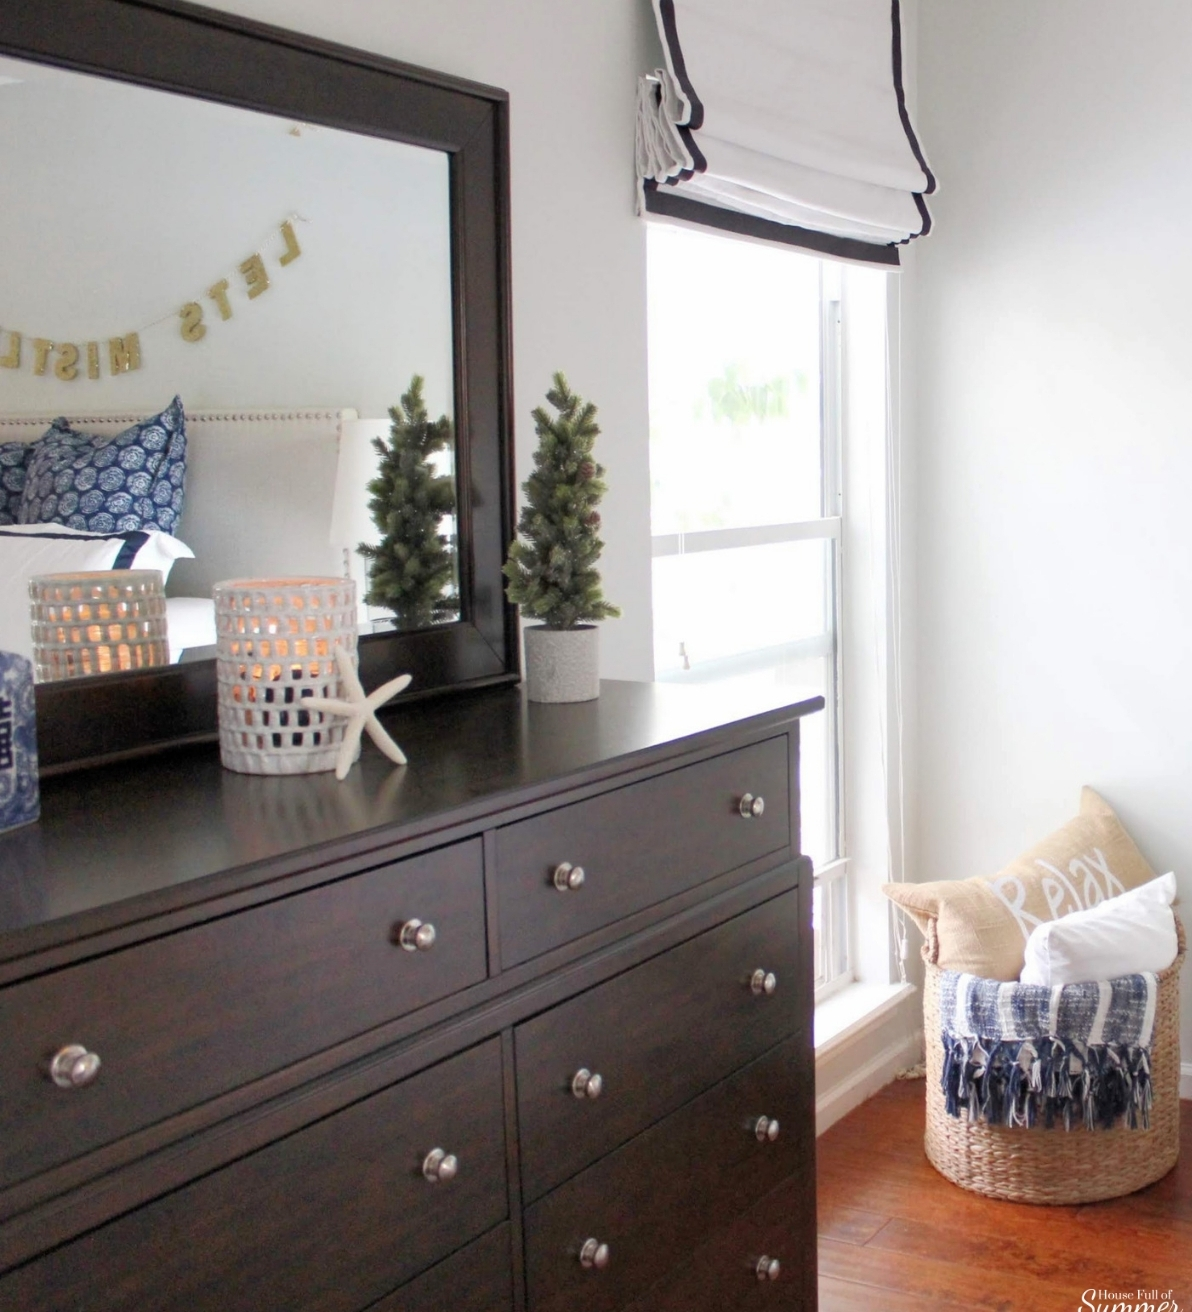 A Charming Southern Christmas Home Tour {Part 2} | House Full of Summer - Master Bedroom Christmas decor ideas, navy Christmas decorations, blue and white holiday decor, foyer, Gold Magnolias and Southern influences in Christmas decor, neutral Christmas decorating, foyer, living room, Christmas centerpiece, greenery, DIY holiday arrangement, coastal decor, Southern Christmas tree ornament ideas tassel ornaments, roman shades